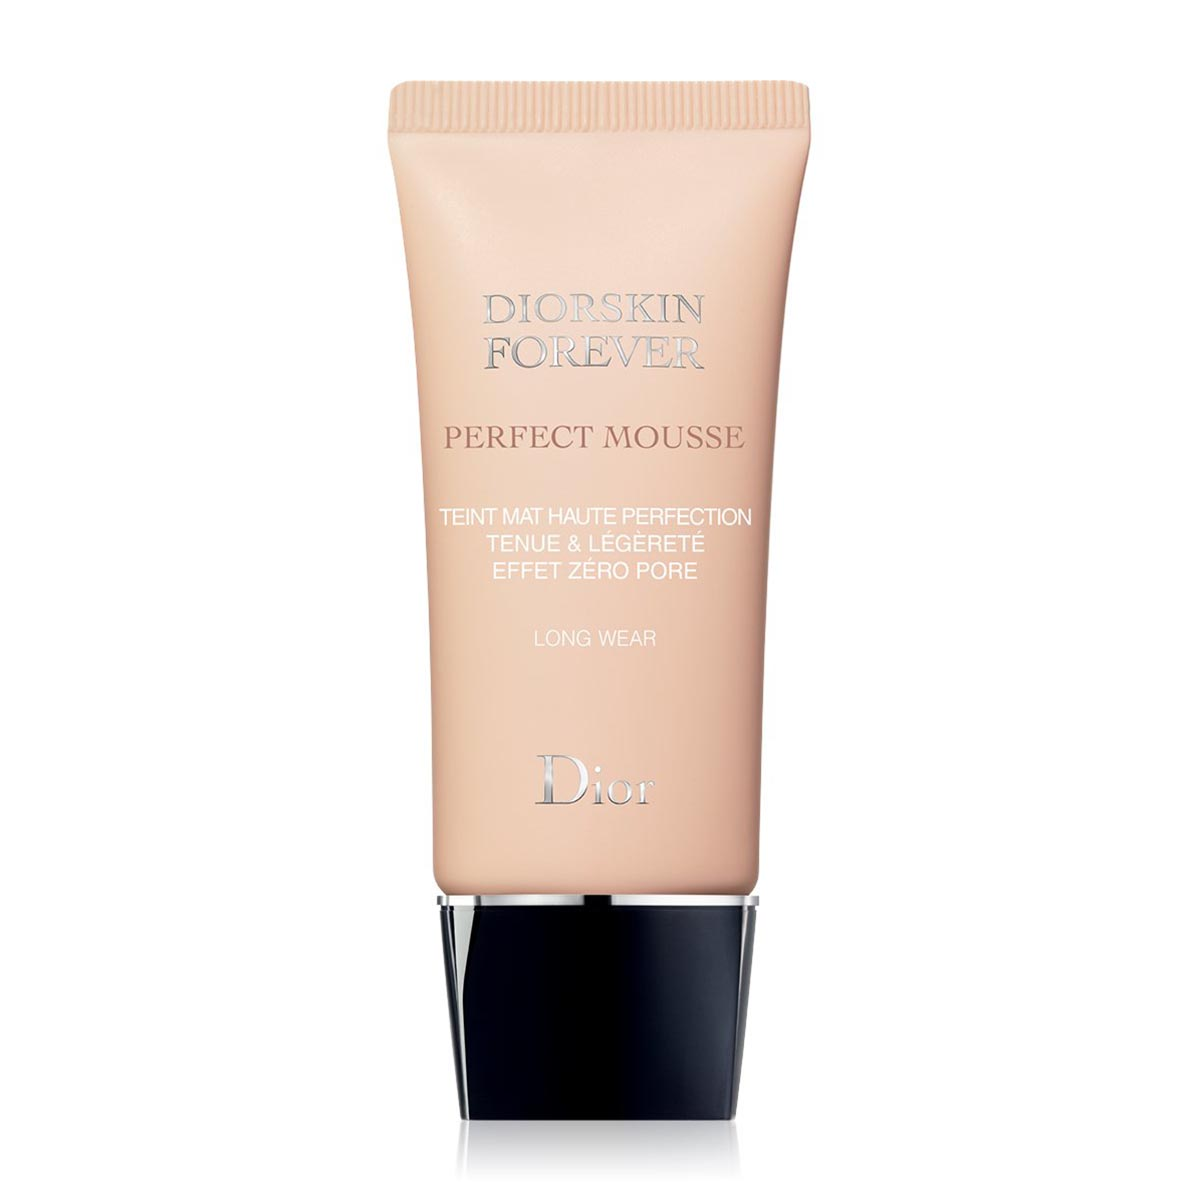 Dior diorskin forever perfect mousse 033